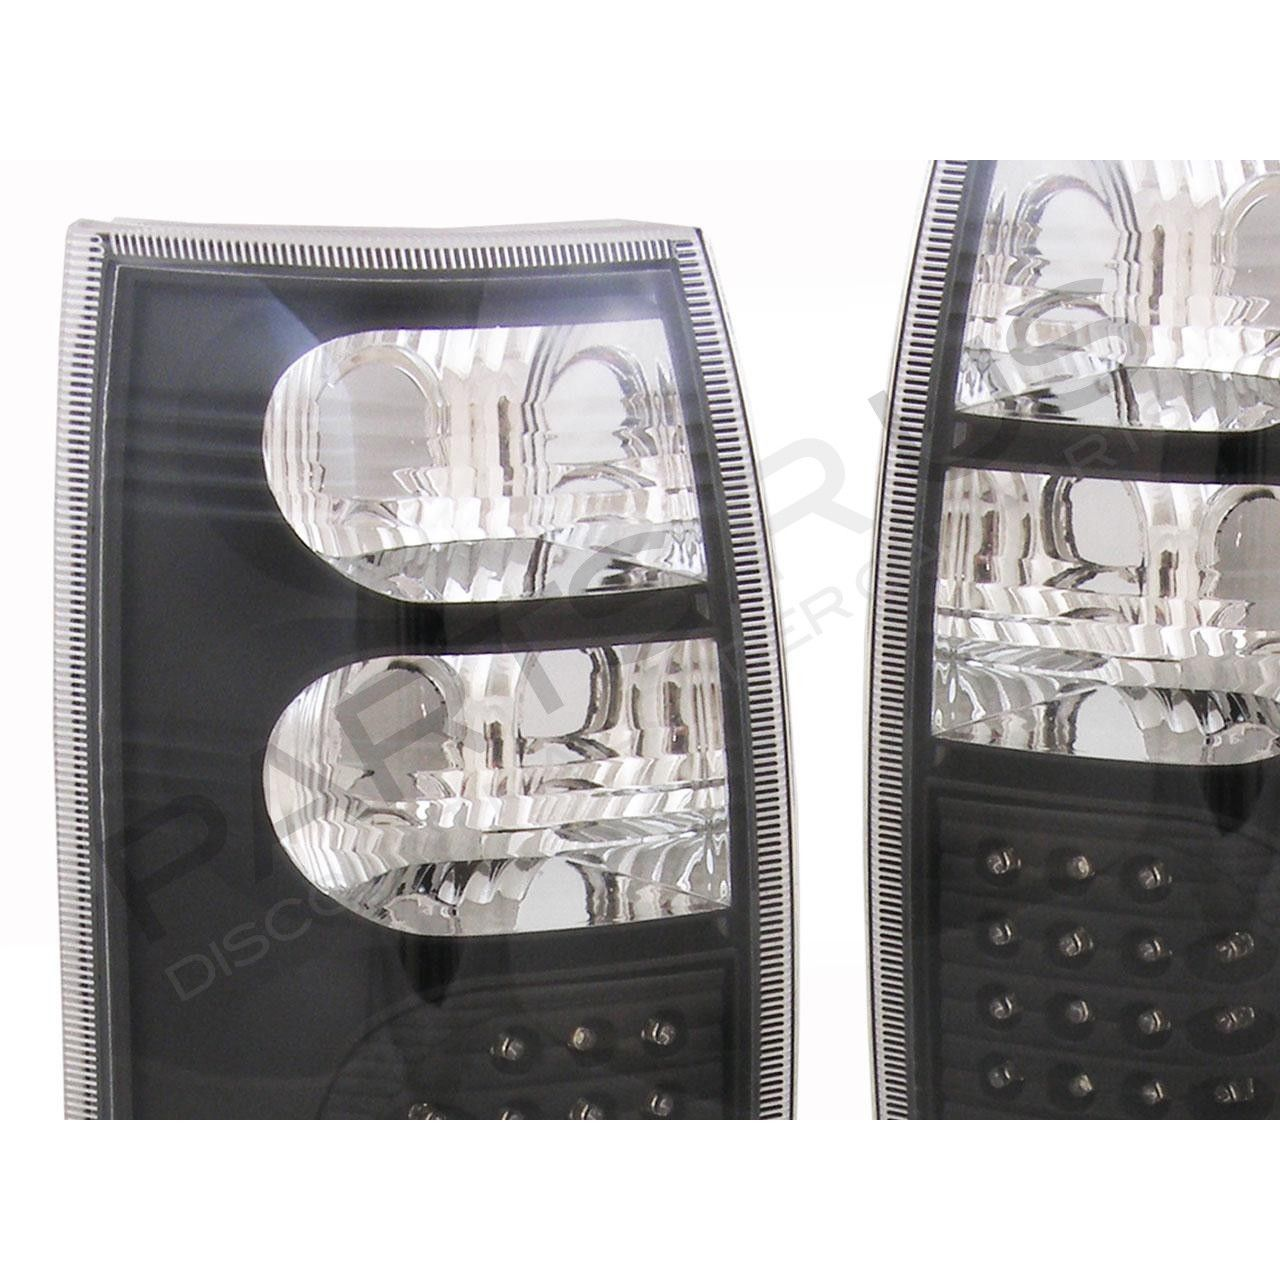 Tail Lights Holden VT VX VU VY VZ Wagon Ute LED Black Altezza Clear 97 98 99 00-  sc 1 st  CarsRus & Tail Lights Holden VT VX VU VY VZ Wagon Ute LED Black Altezza Clear ...